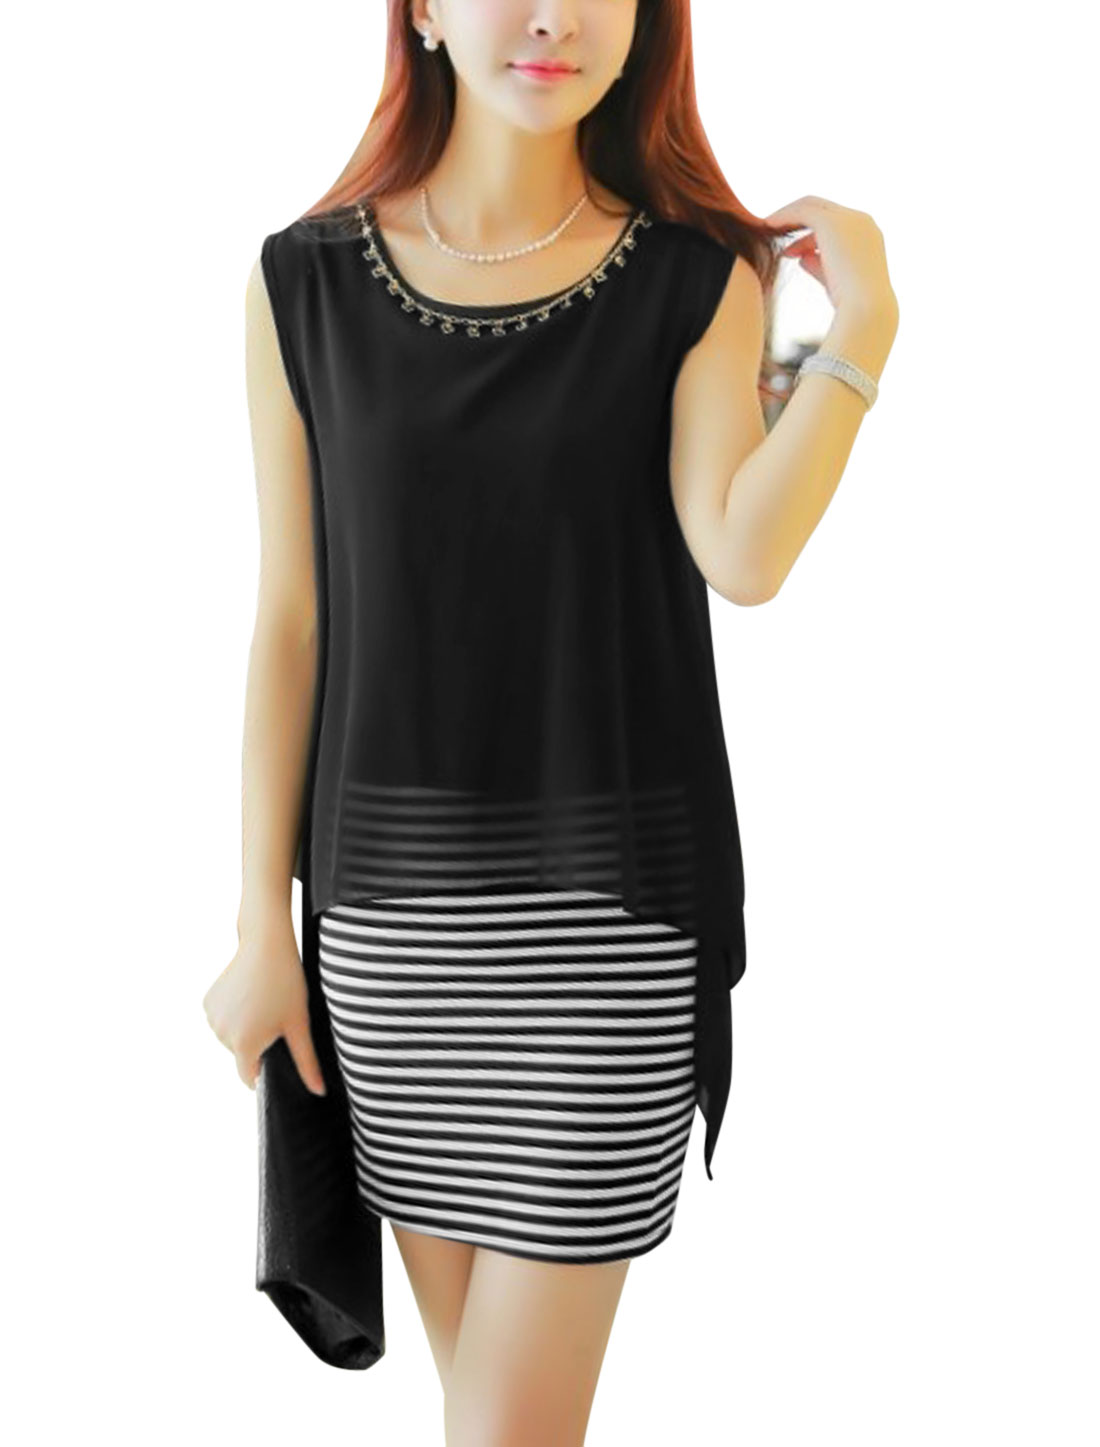 Lady Black Horizontal Stripes Fake Two Piece Design Straight Dress w Necklace M